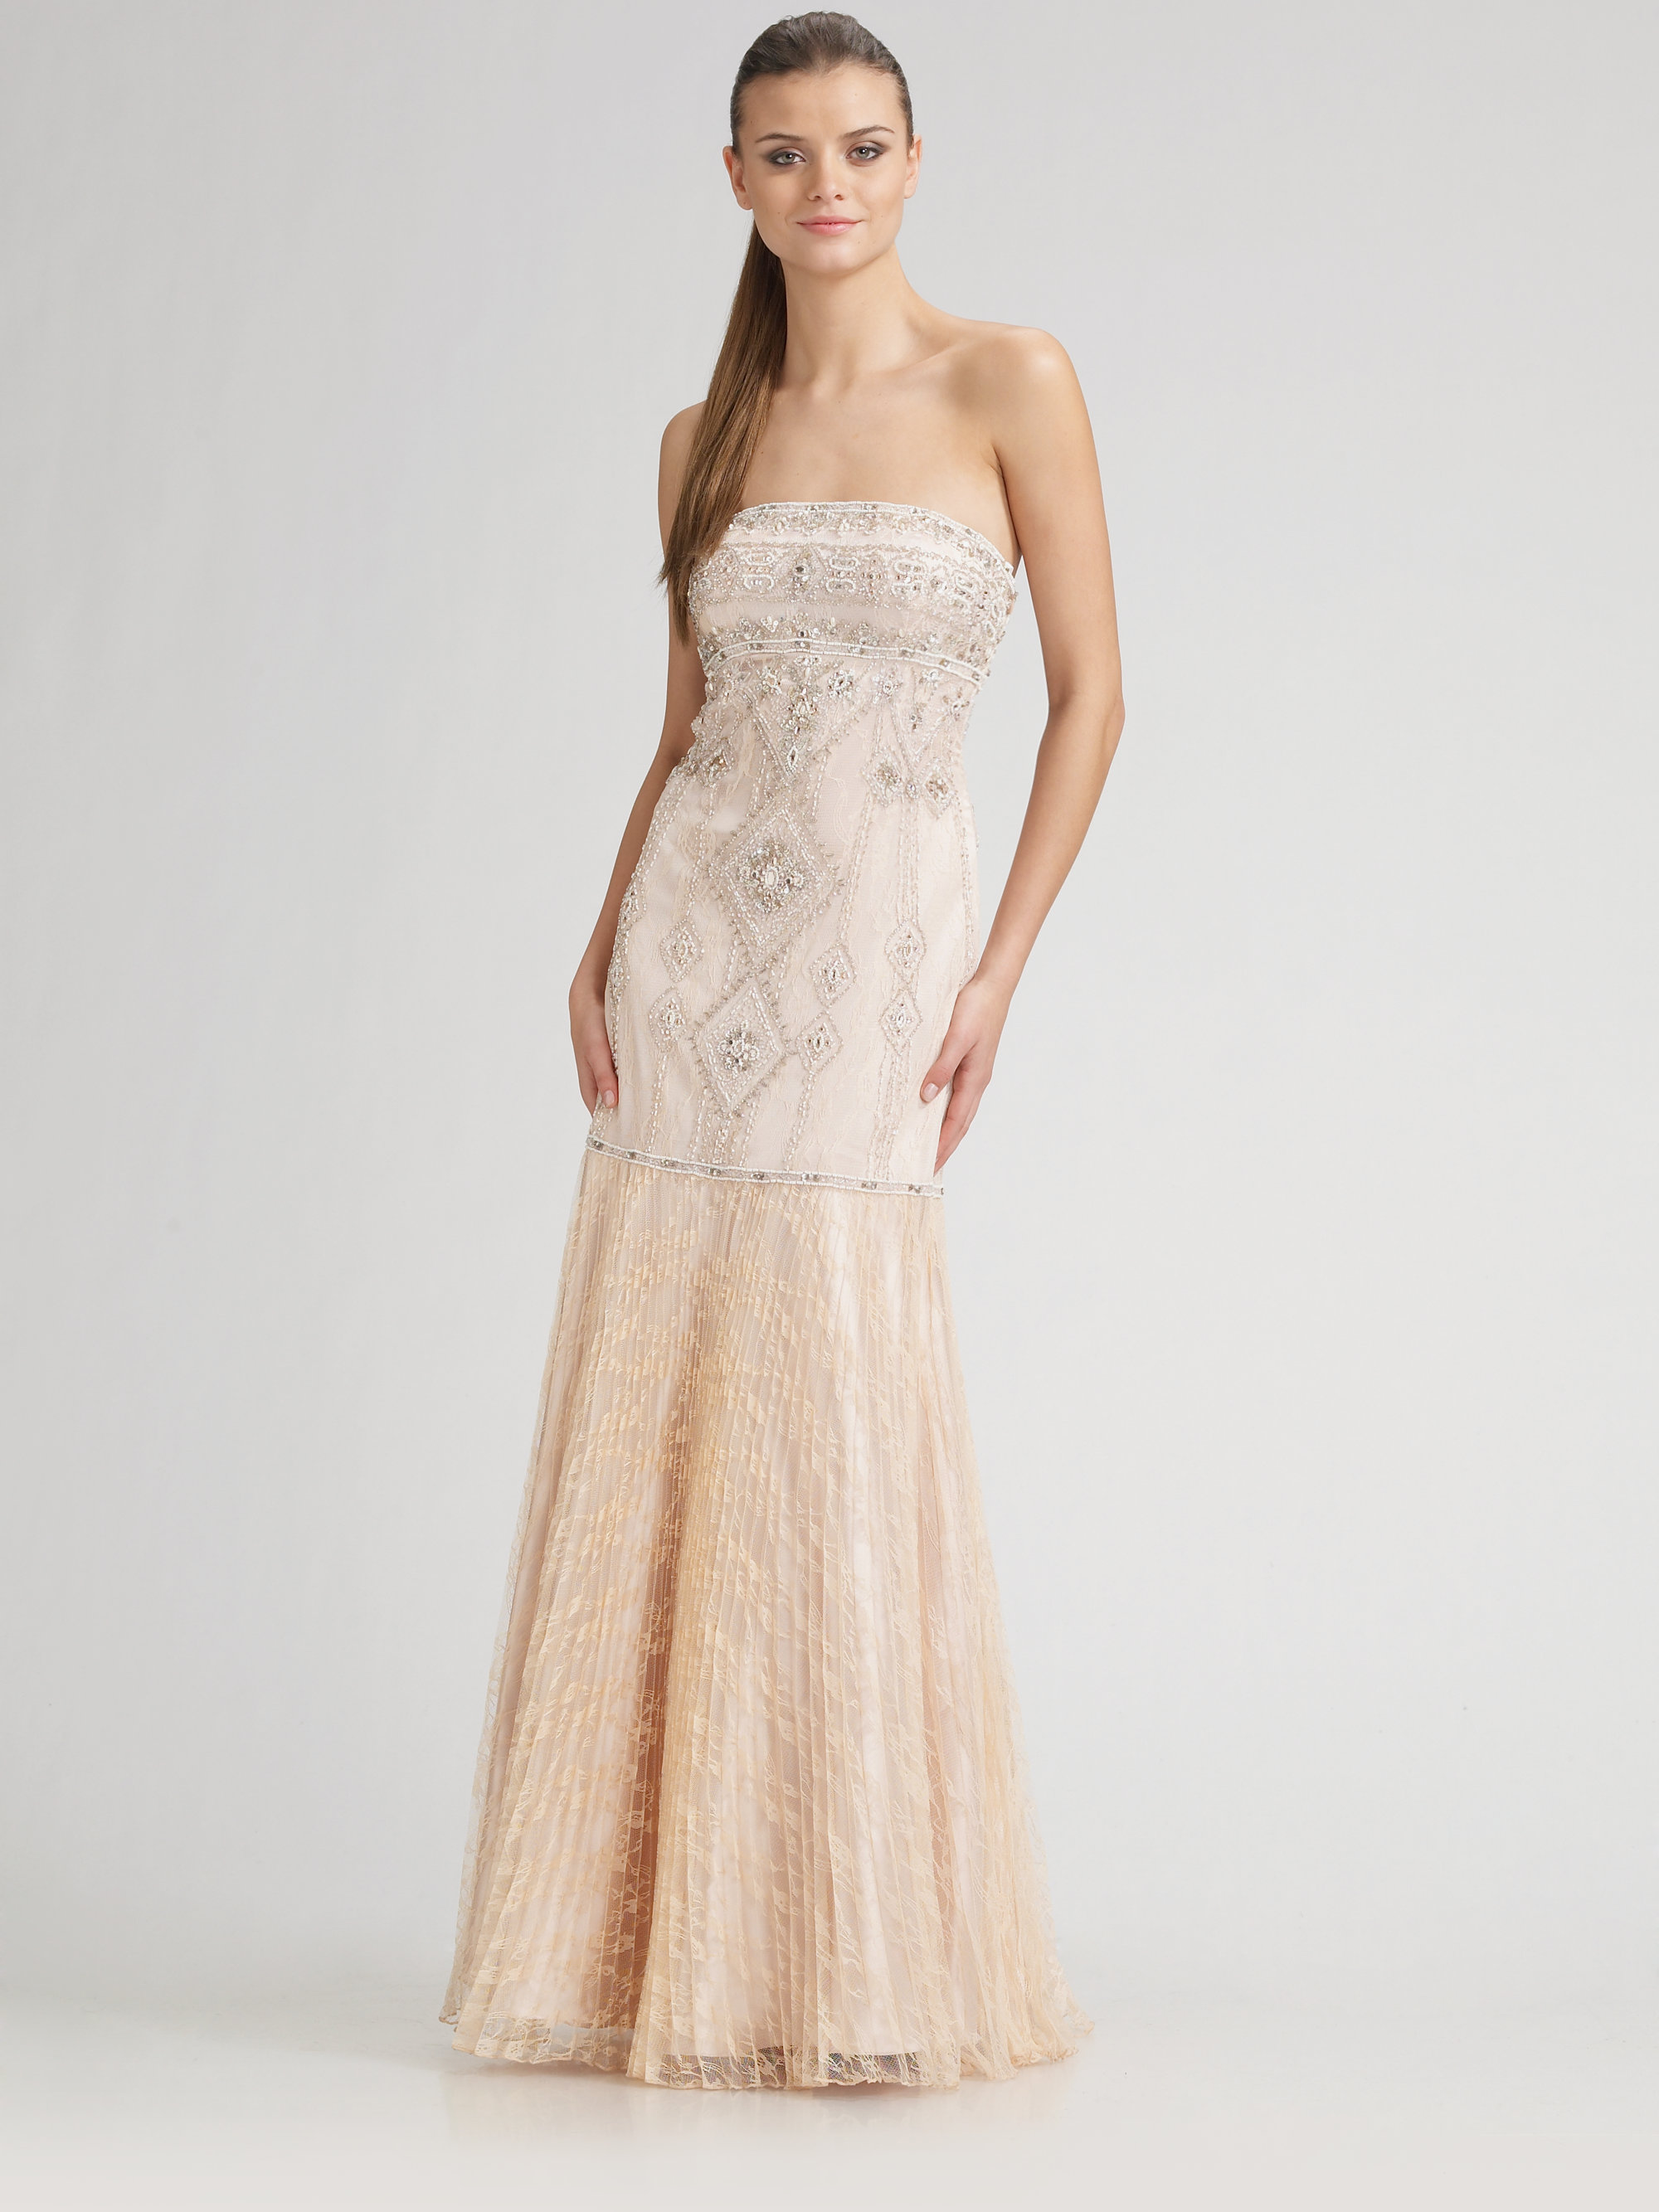 Lyst - Sue Wong Strapless Beaded Gown in Natural